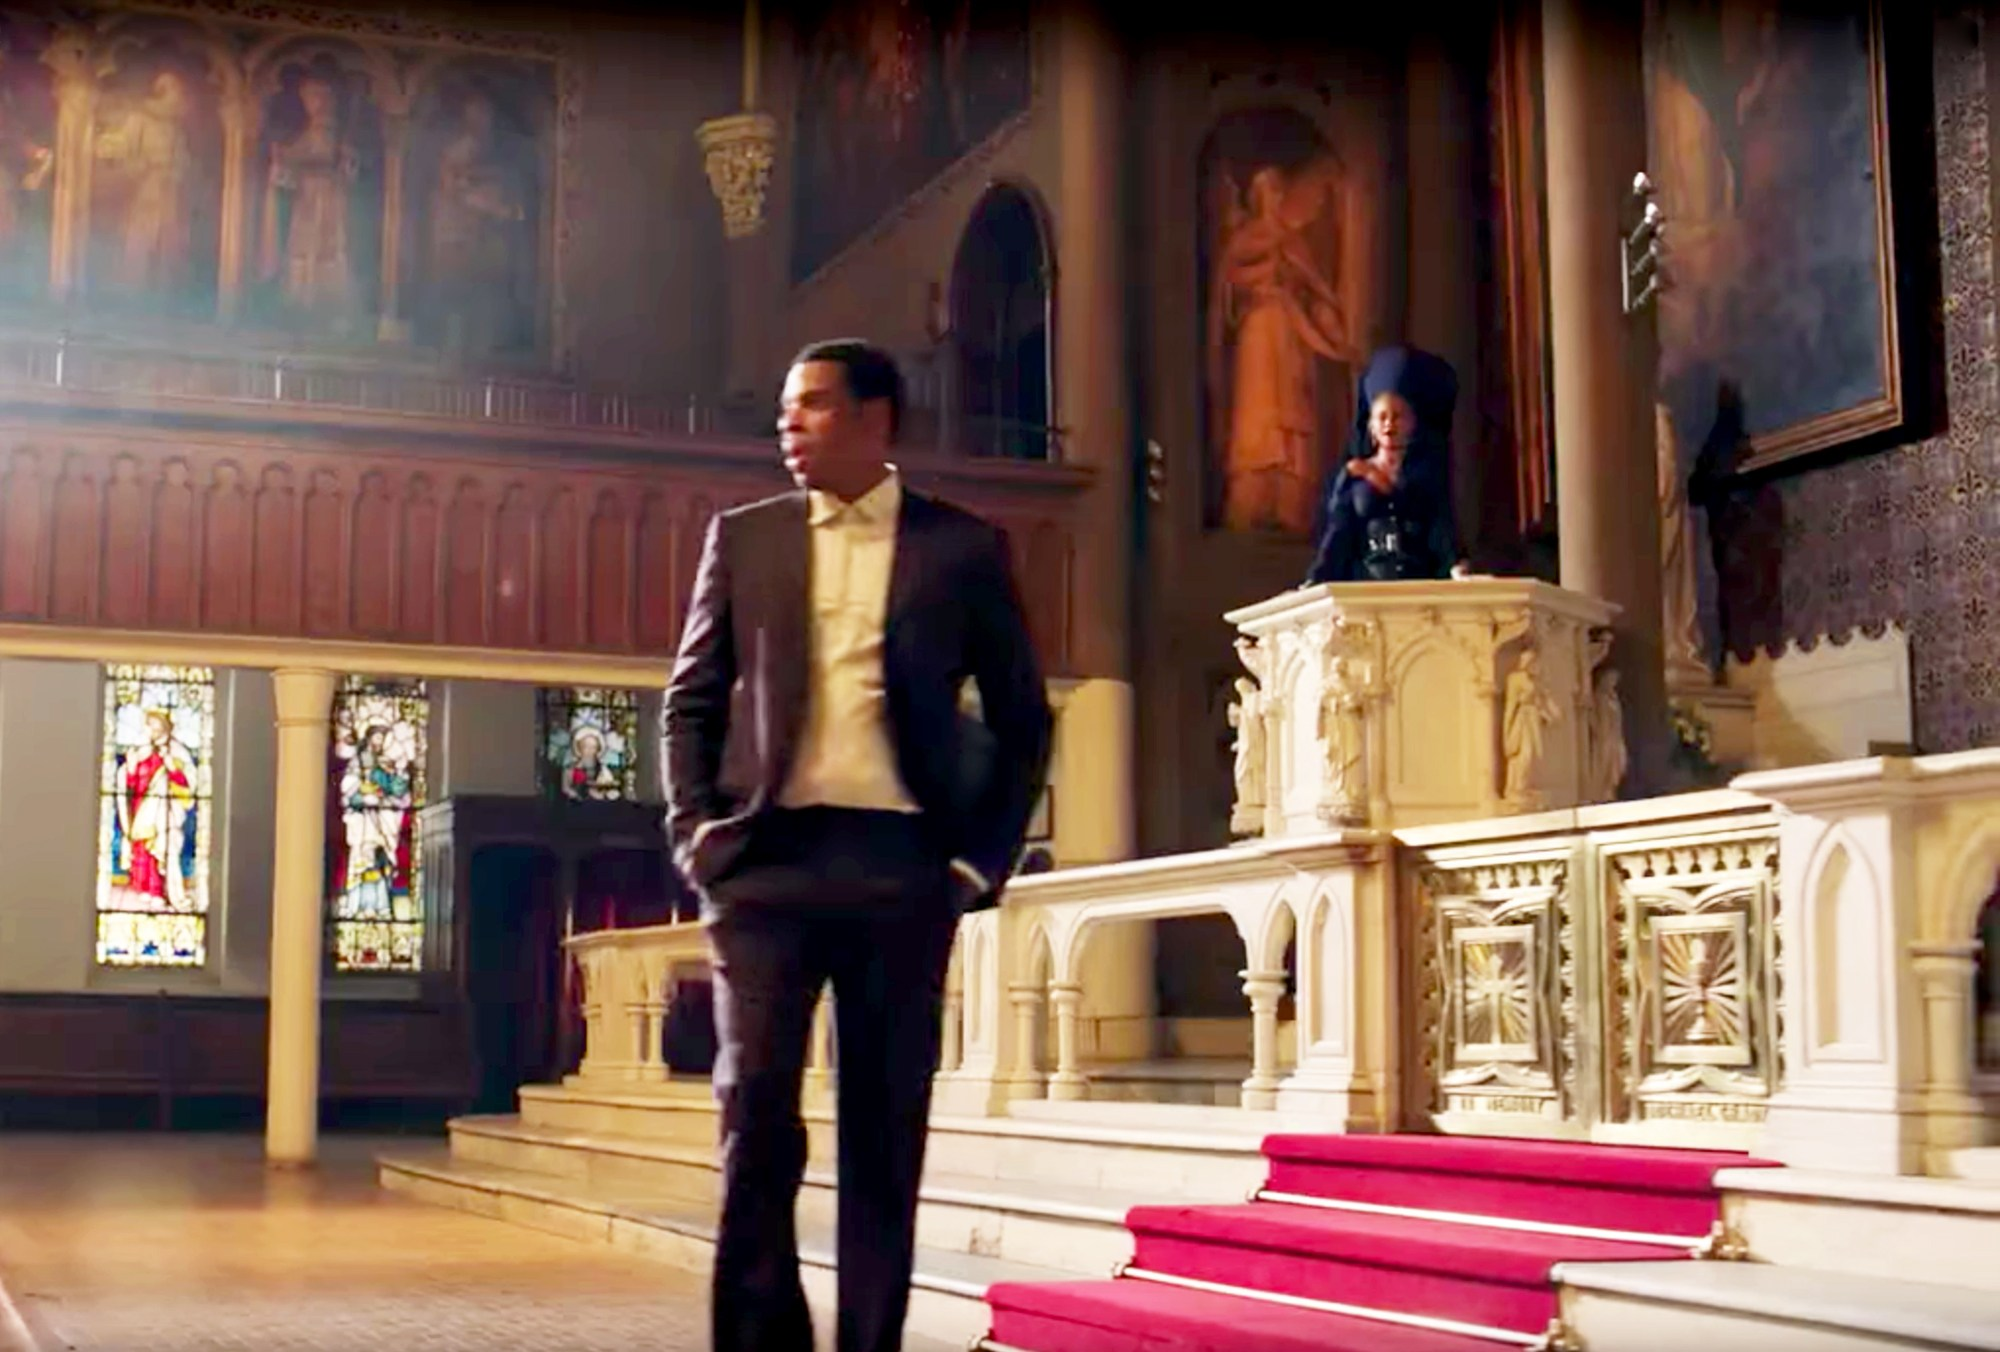 Jay Z and Beyonce in 'Family Feud' video